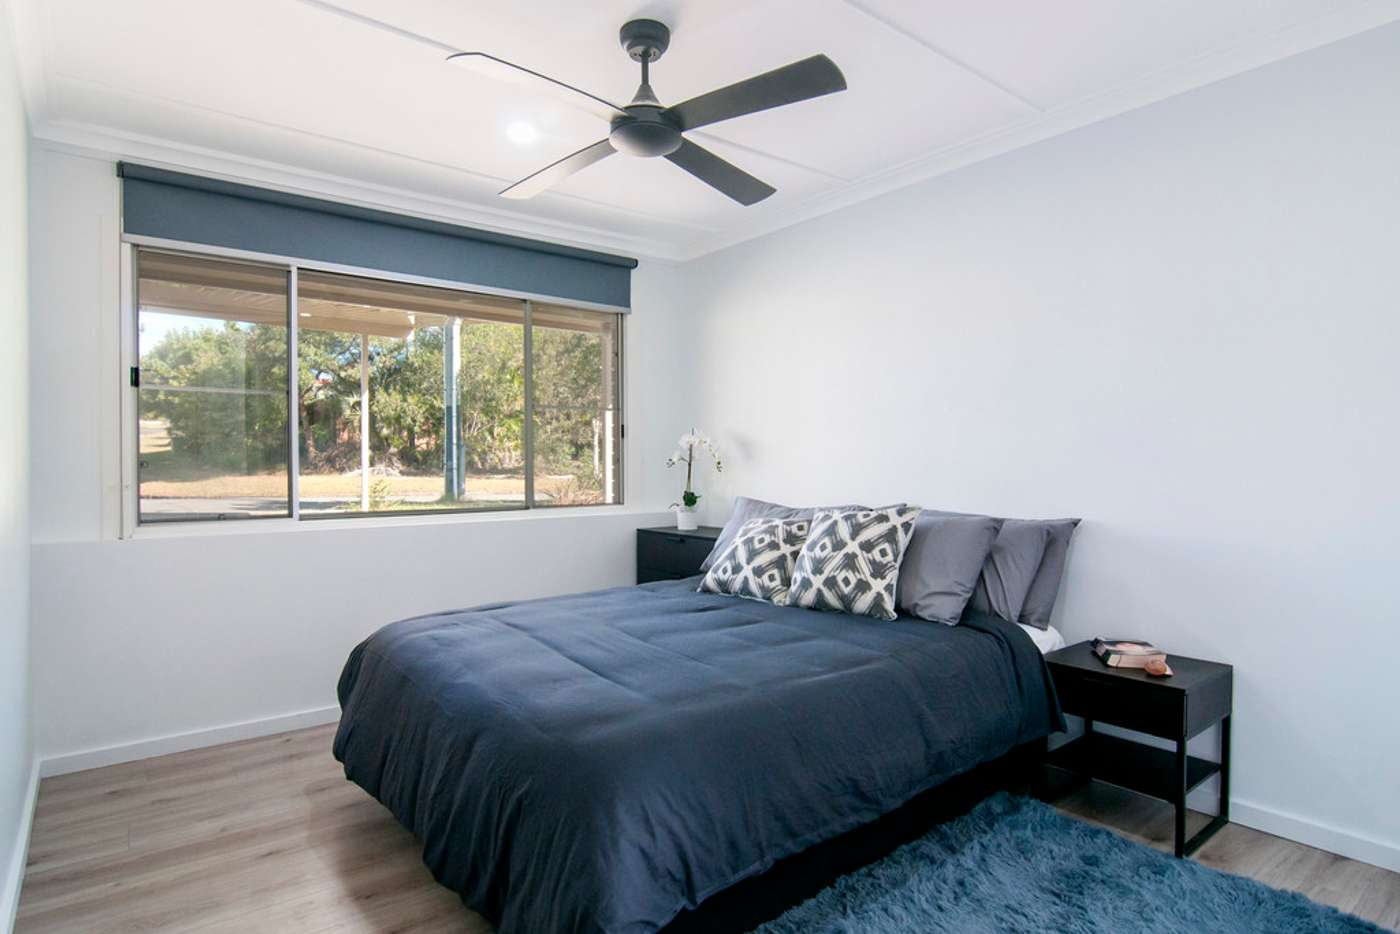 Fifth view of Homely house listing, 23 Wenlock Crescent, Springwood QLD 4127